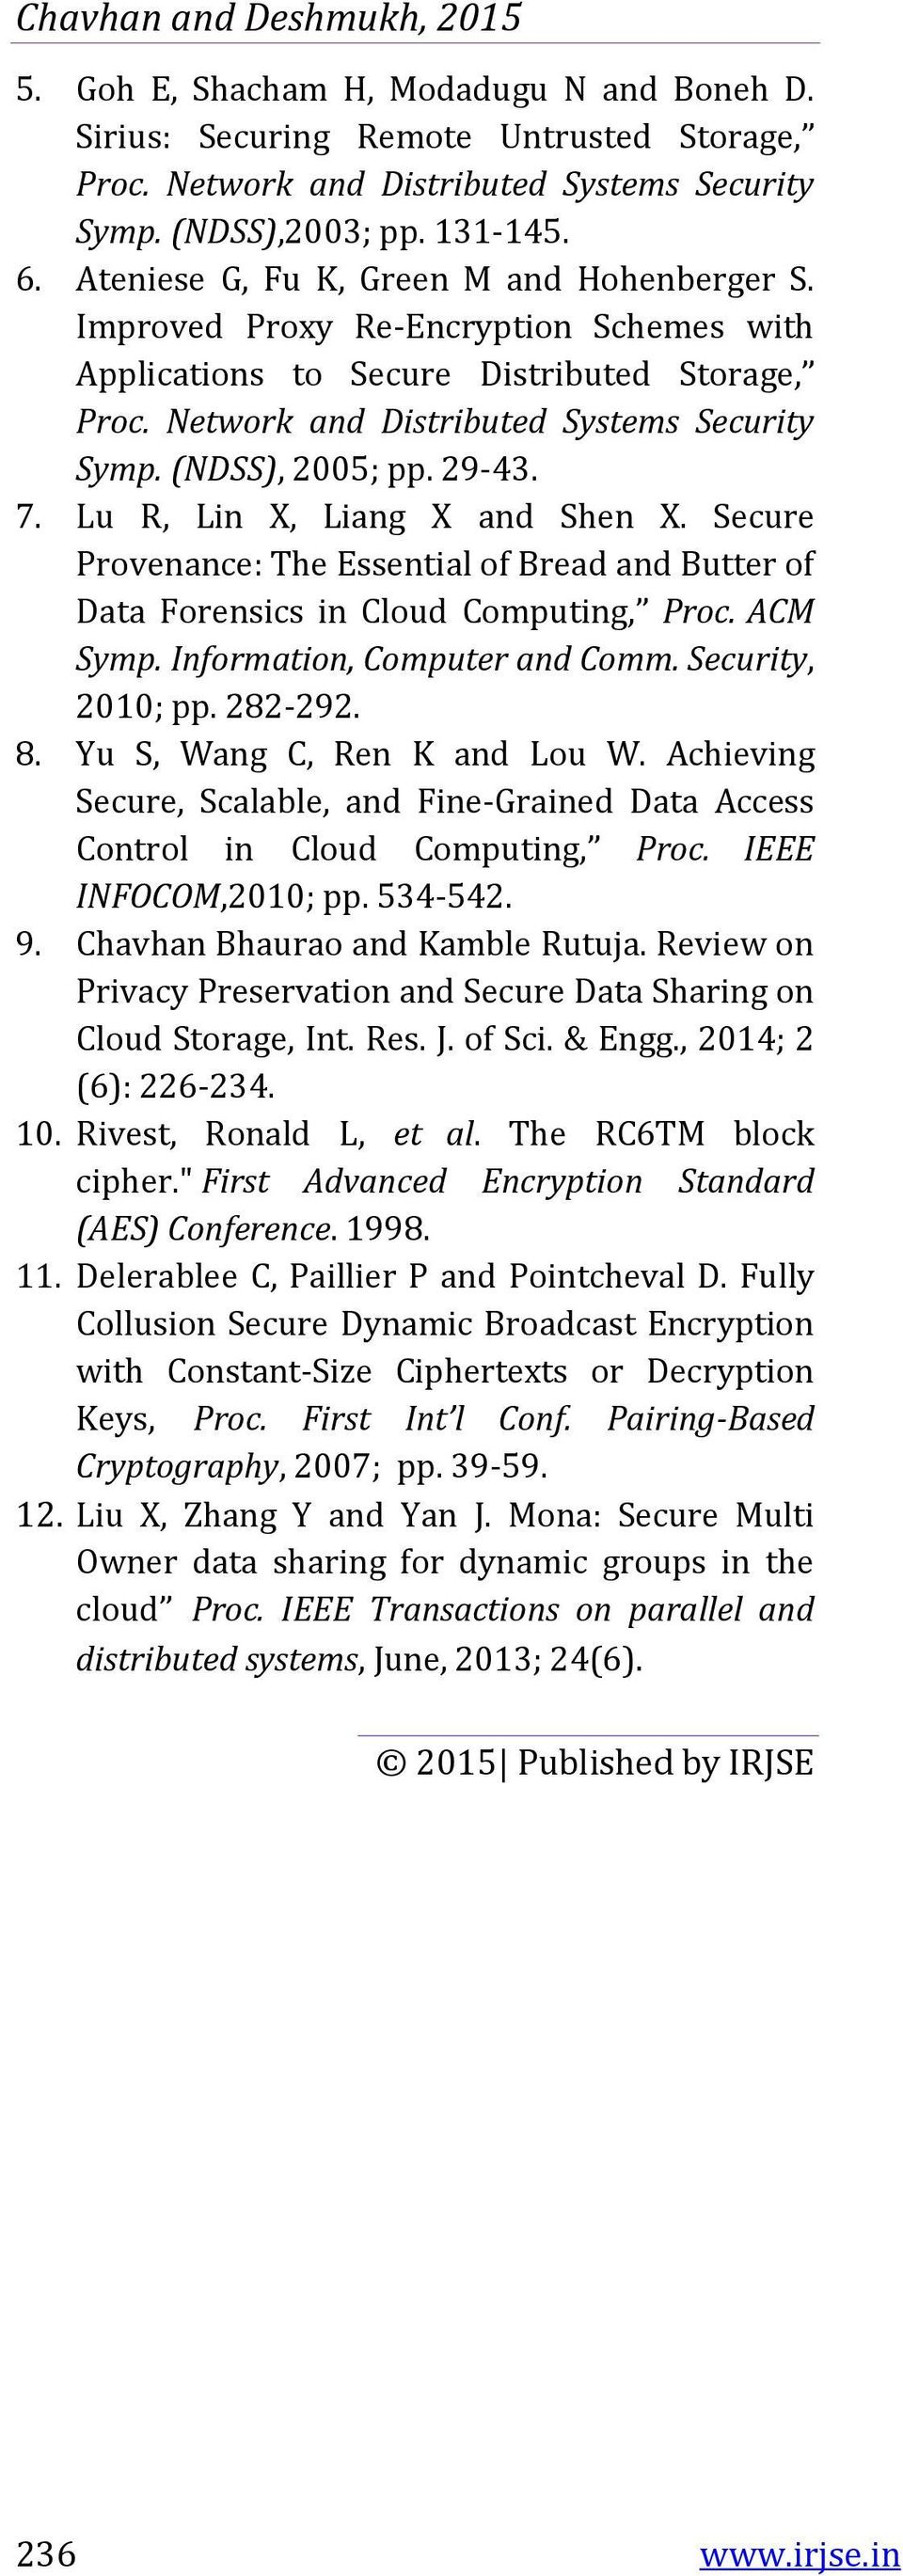 (NDSS), 2005; pp. 29-43. 7. Lu R, Lin X, Liang X and Shen X. Secure Provenance: The Essential of Bread and Butter of Data Forensics in Cloud Computing, Proc. ACM Symp. Information, Computer and Comm.